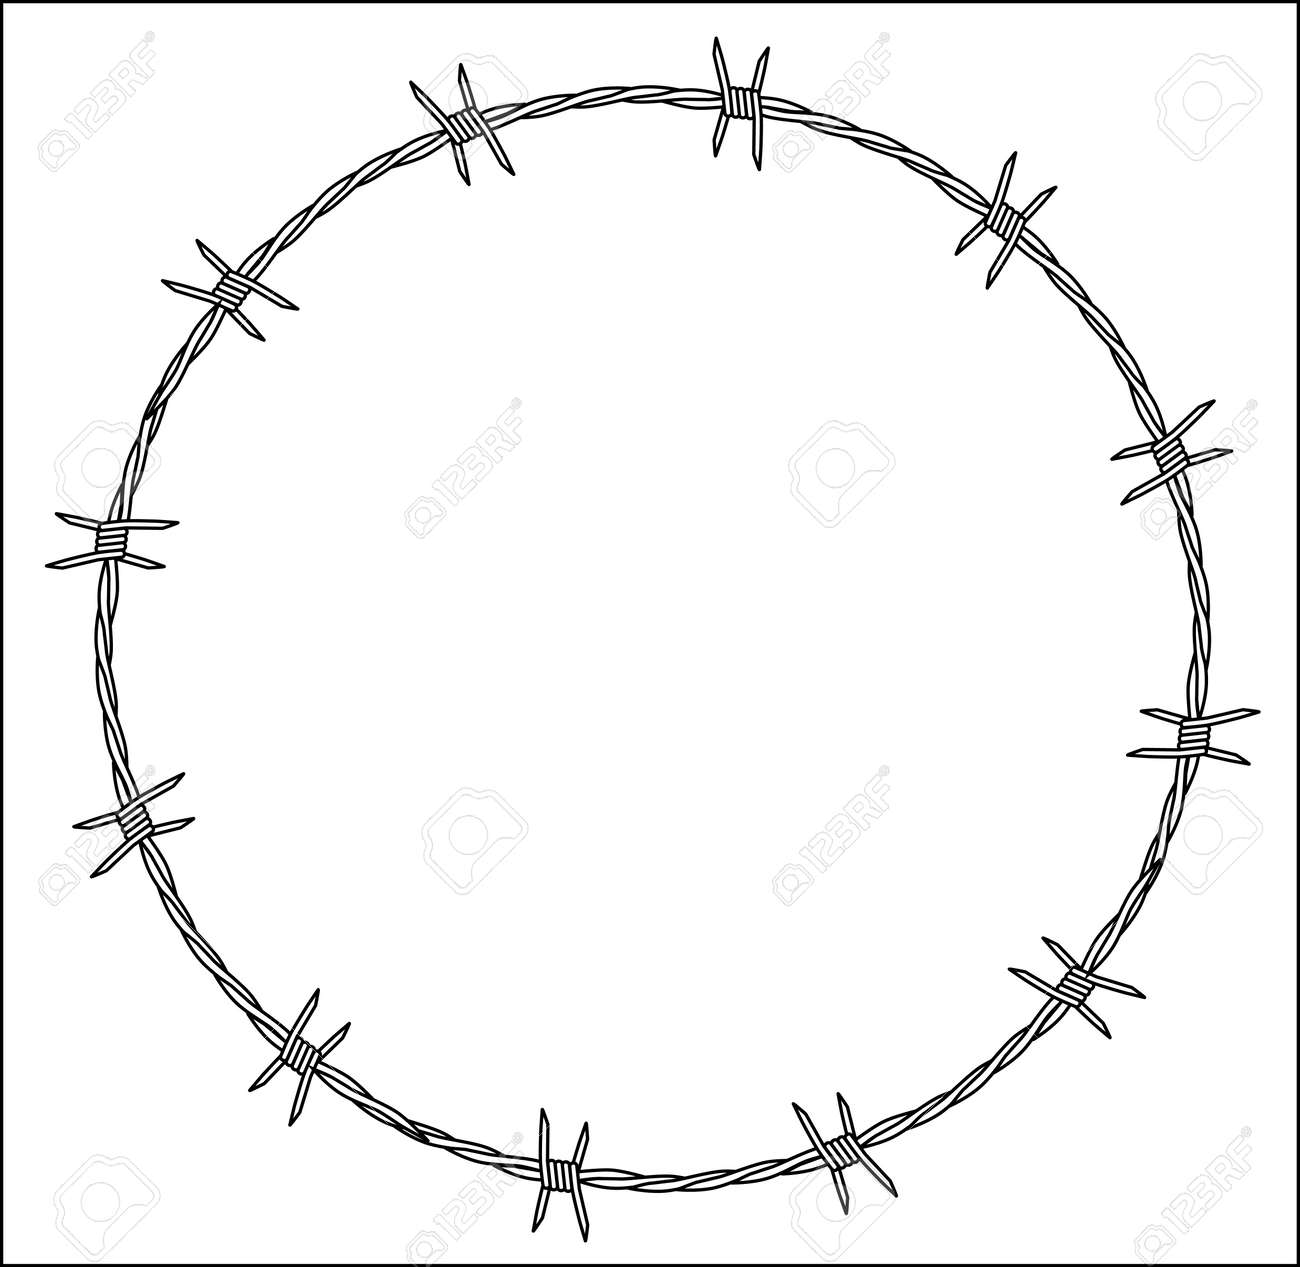 Charming Barbed Wire Bra Gallery - Simple Wiring Diagram Images ...